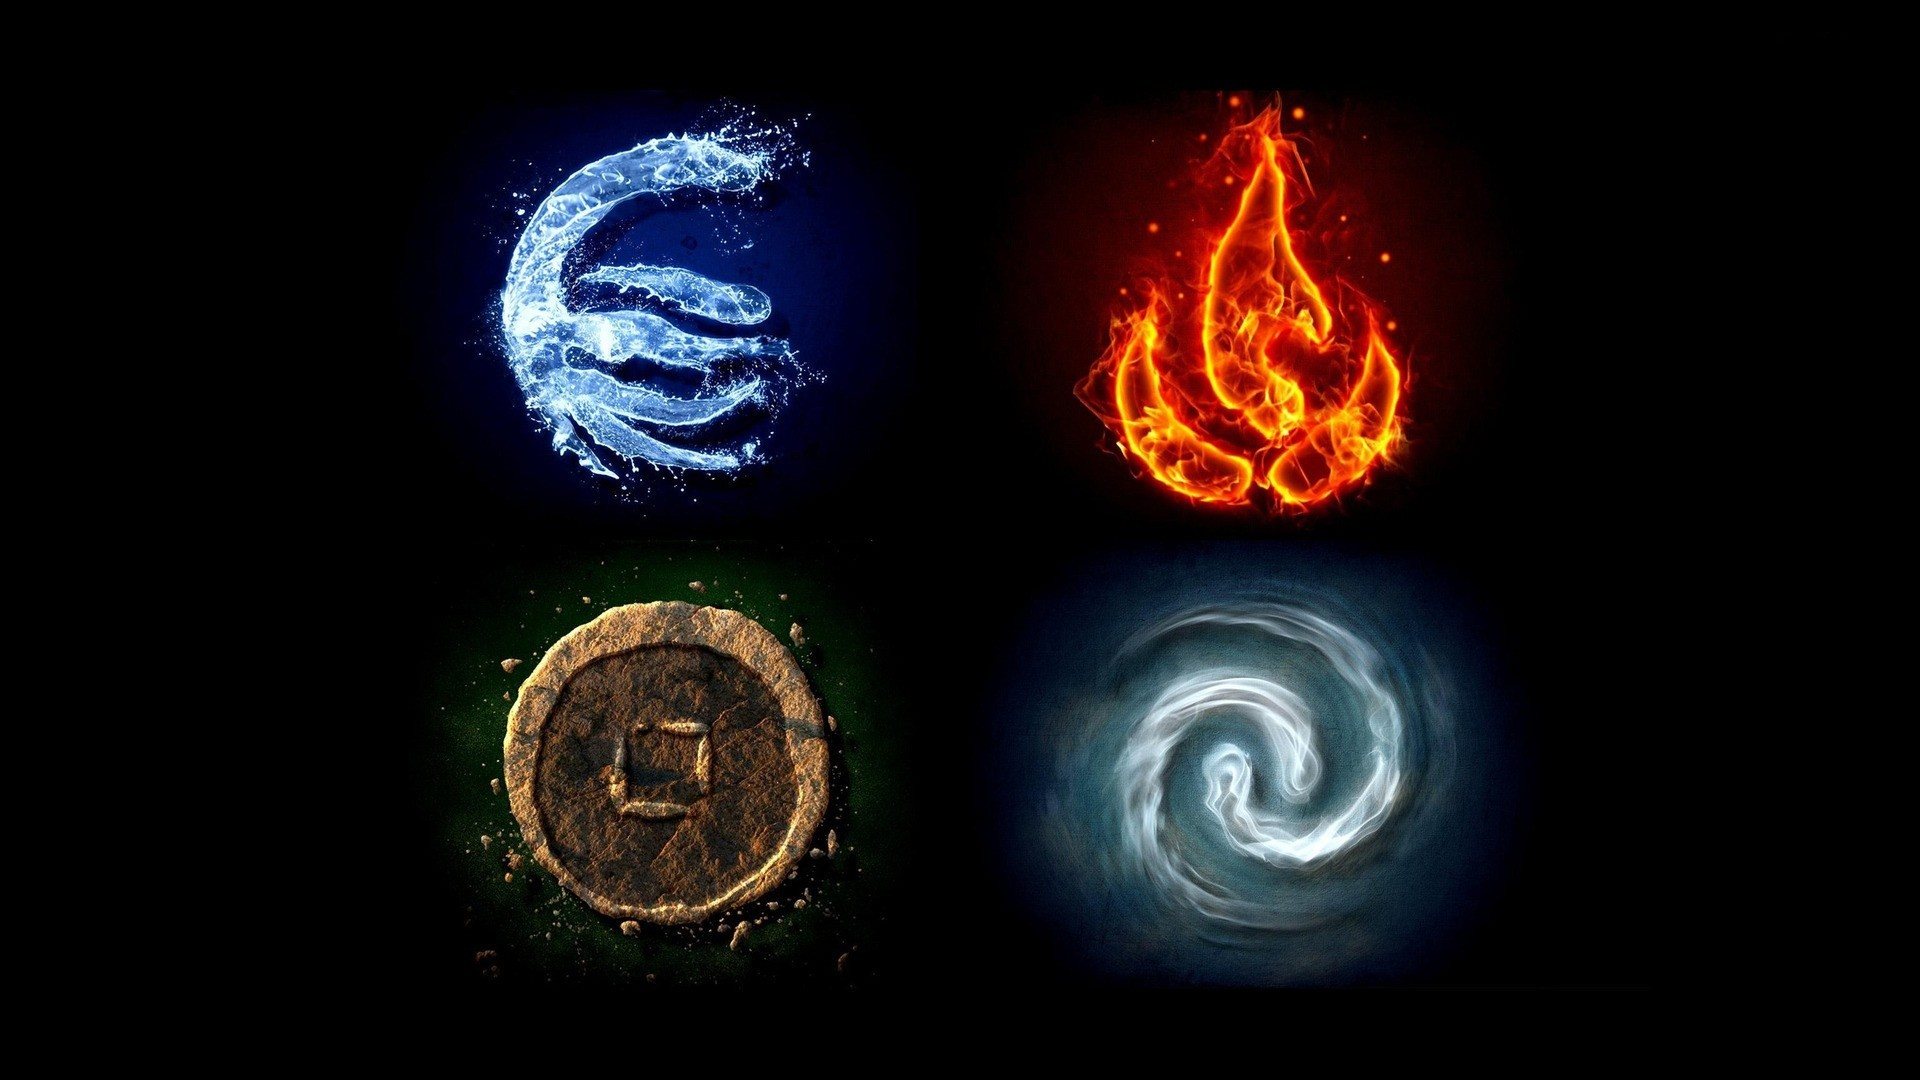 Avatar The Last Airbender HD Wallpapers.